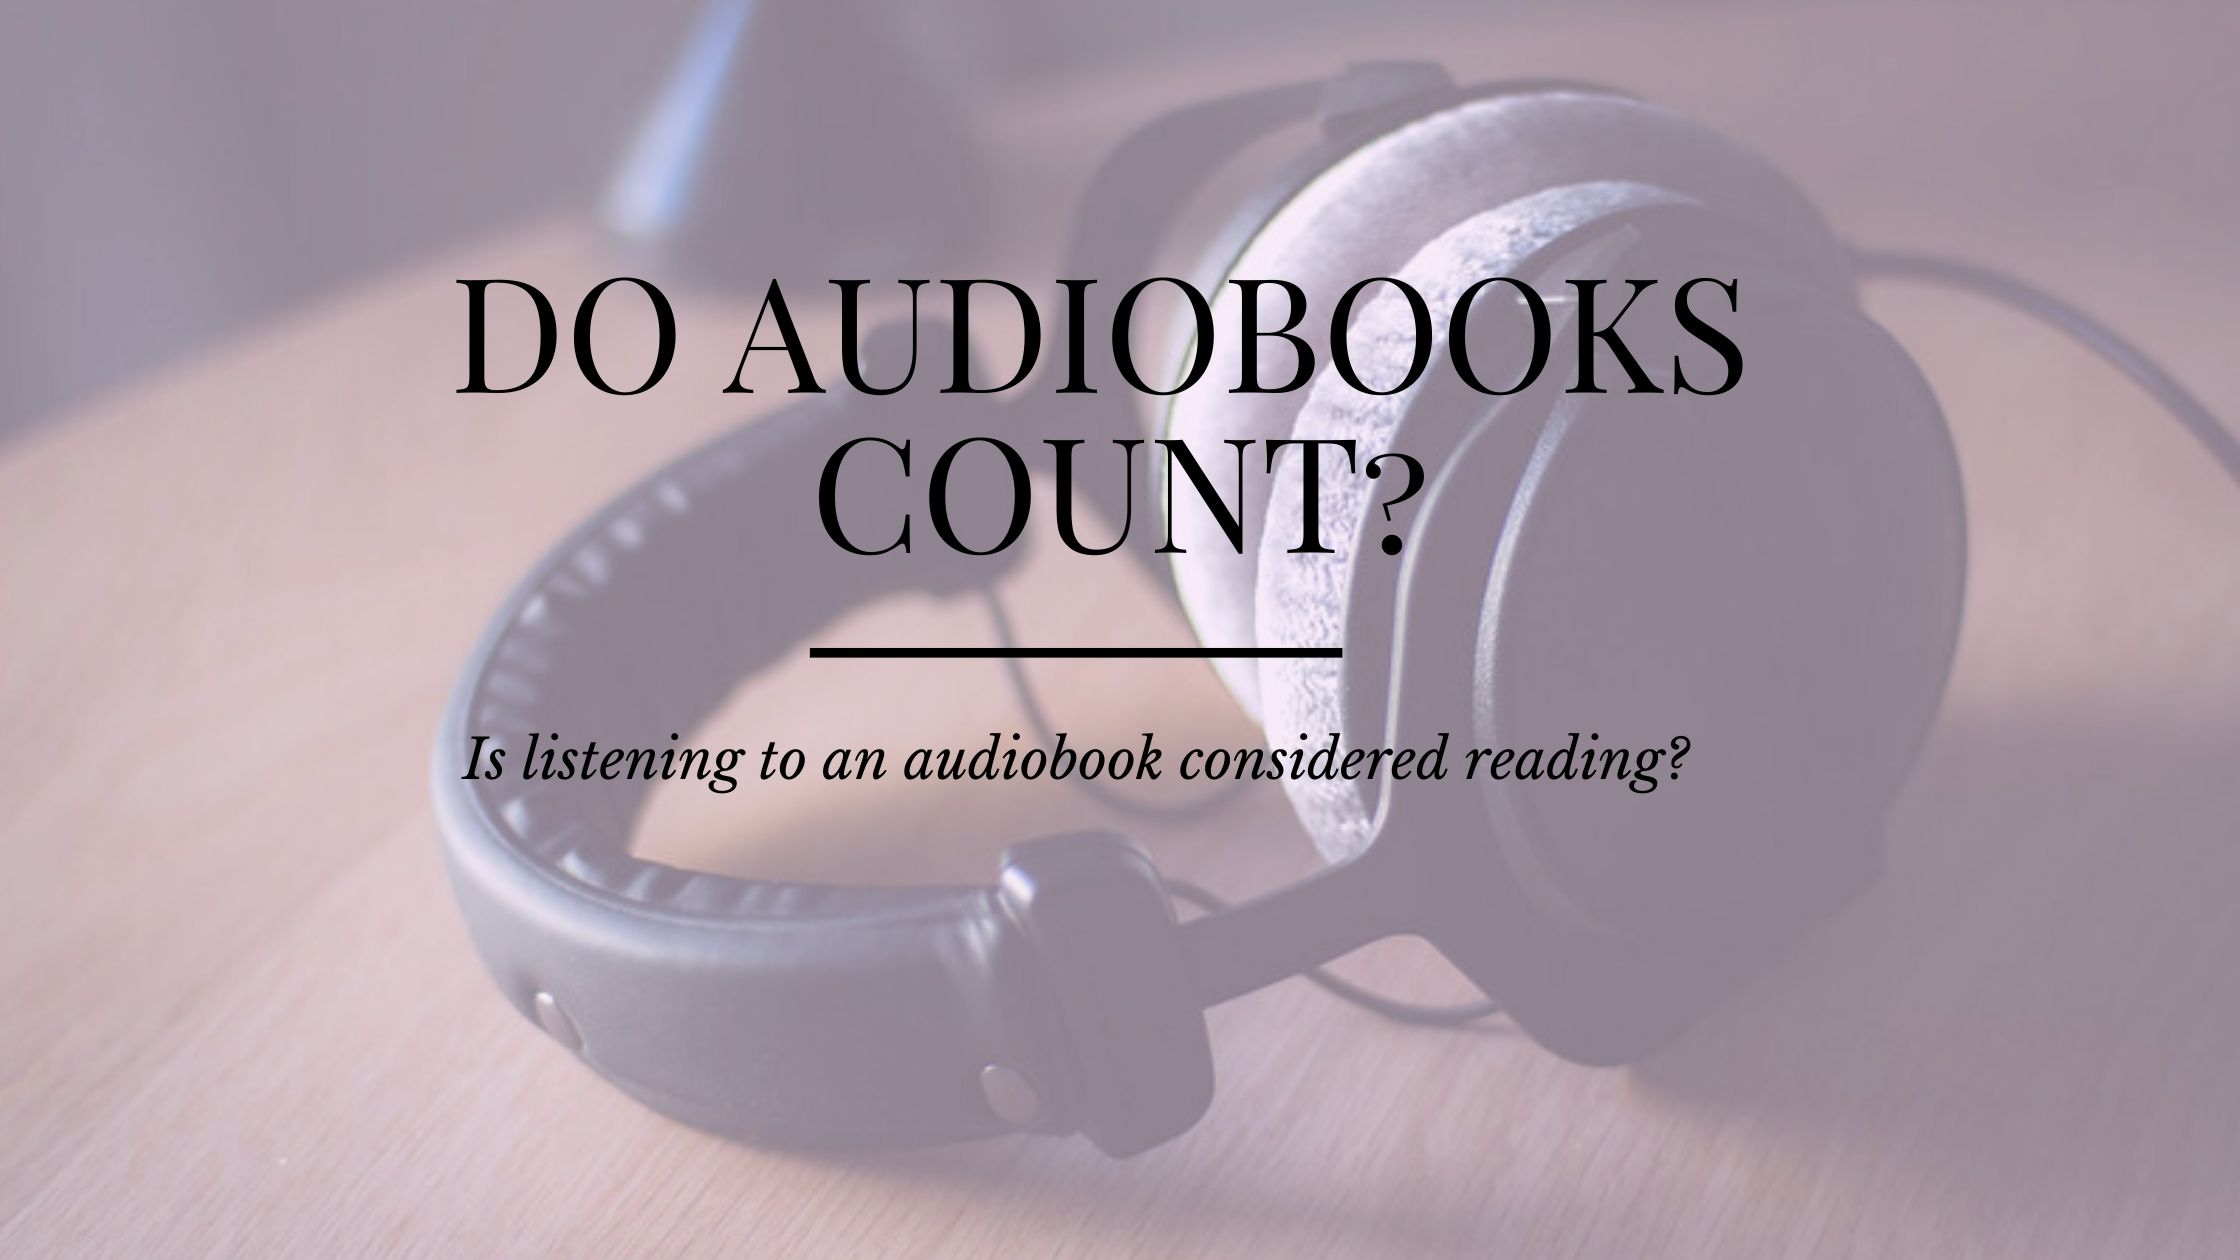 Do audiobooks count? Does listenning to an audiobook count as reading? via @tbookjunkie